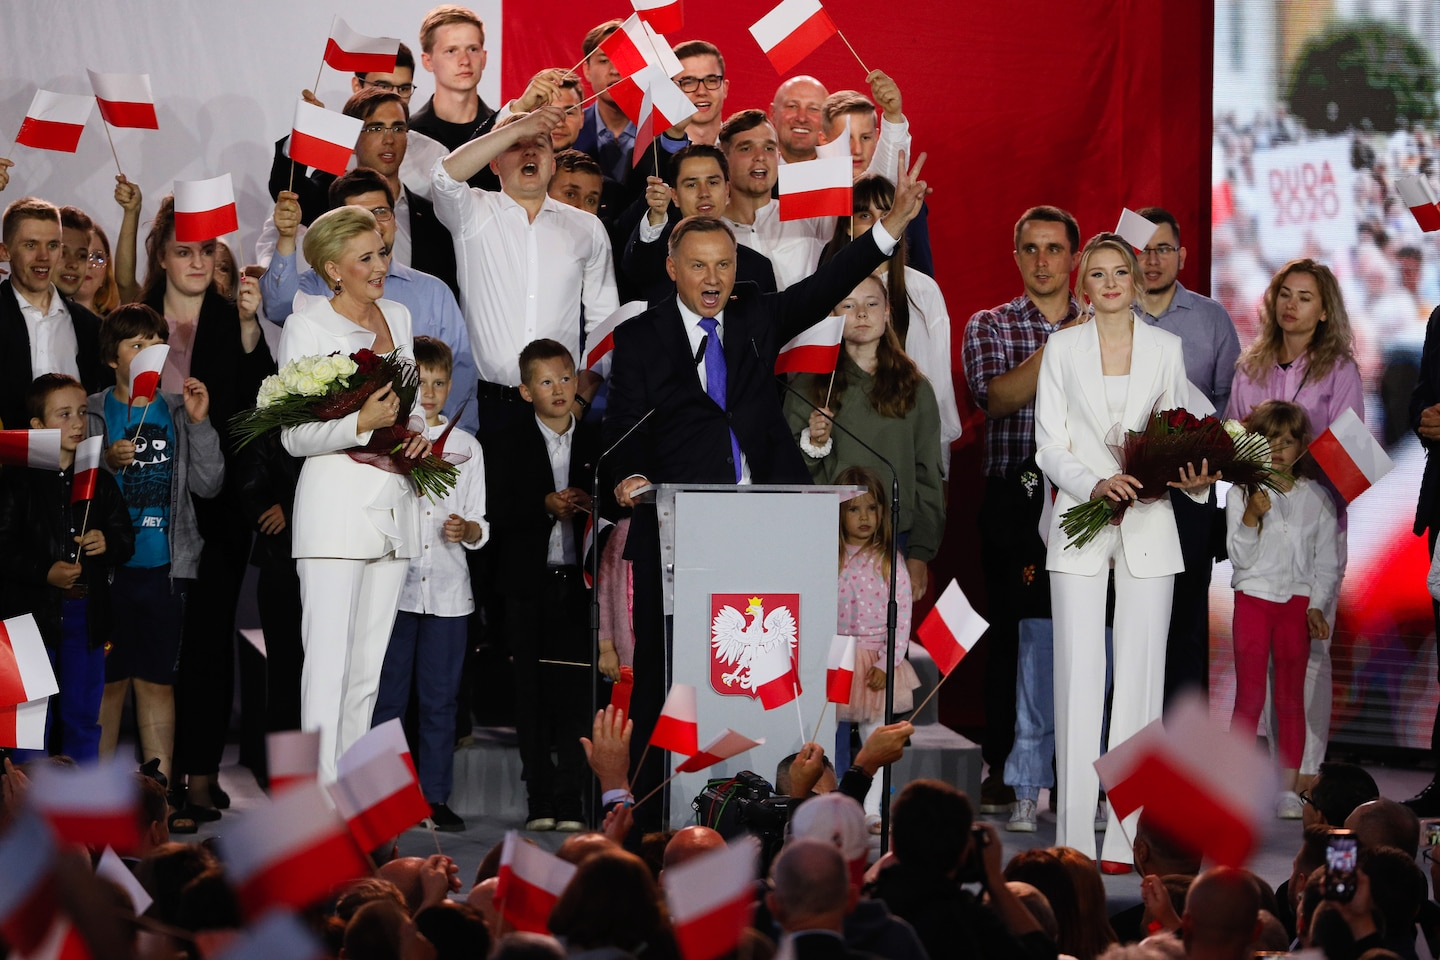 Polish President Duda's reelection has consequences for its democratic future